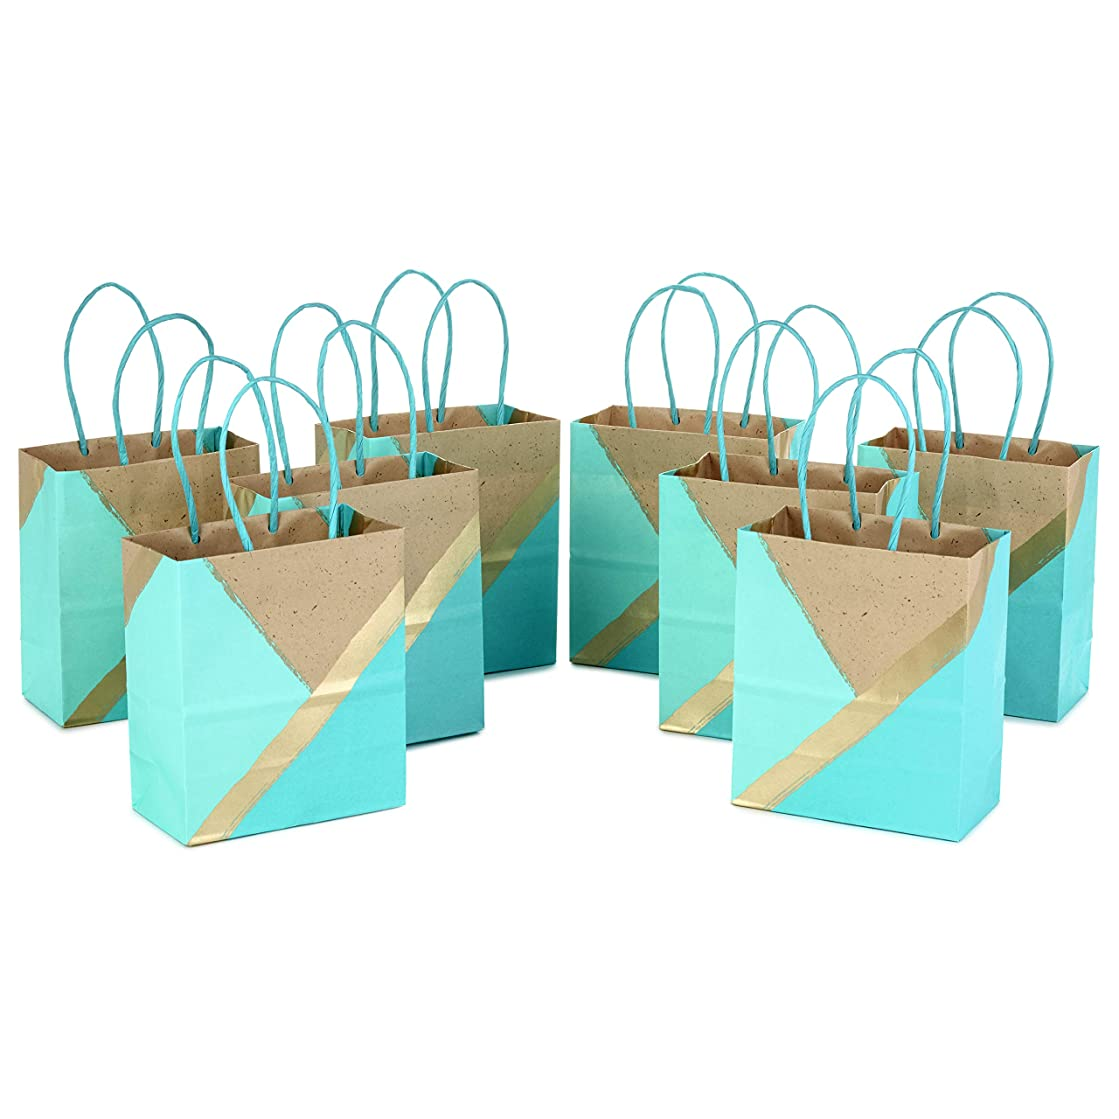 Hallmark Small Paper Gift Bags for Birthdays, Weddings, Mother's Day, Baby Showers, Bridal Showers, and More (Turquoise and Mint, Pack of 8)